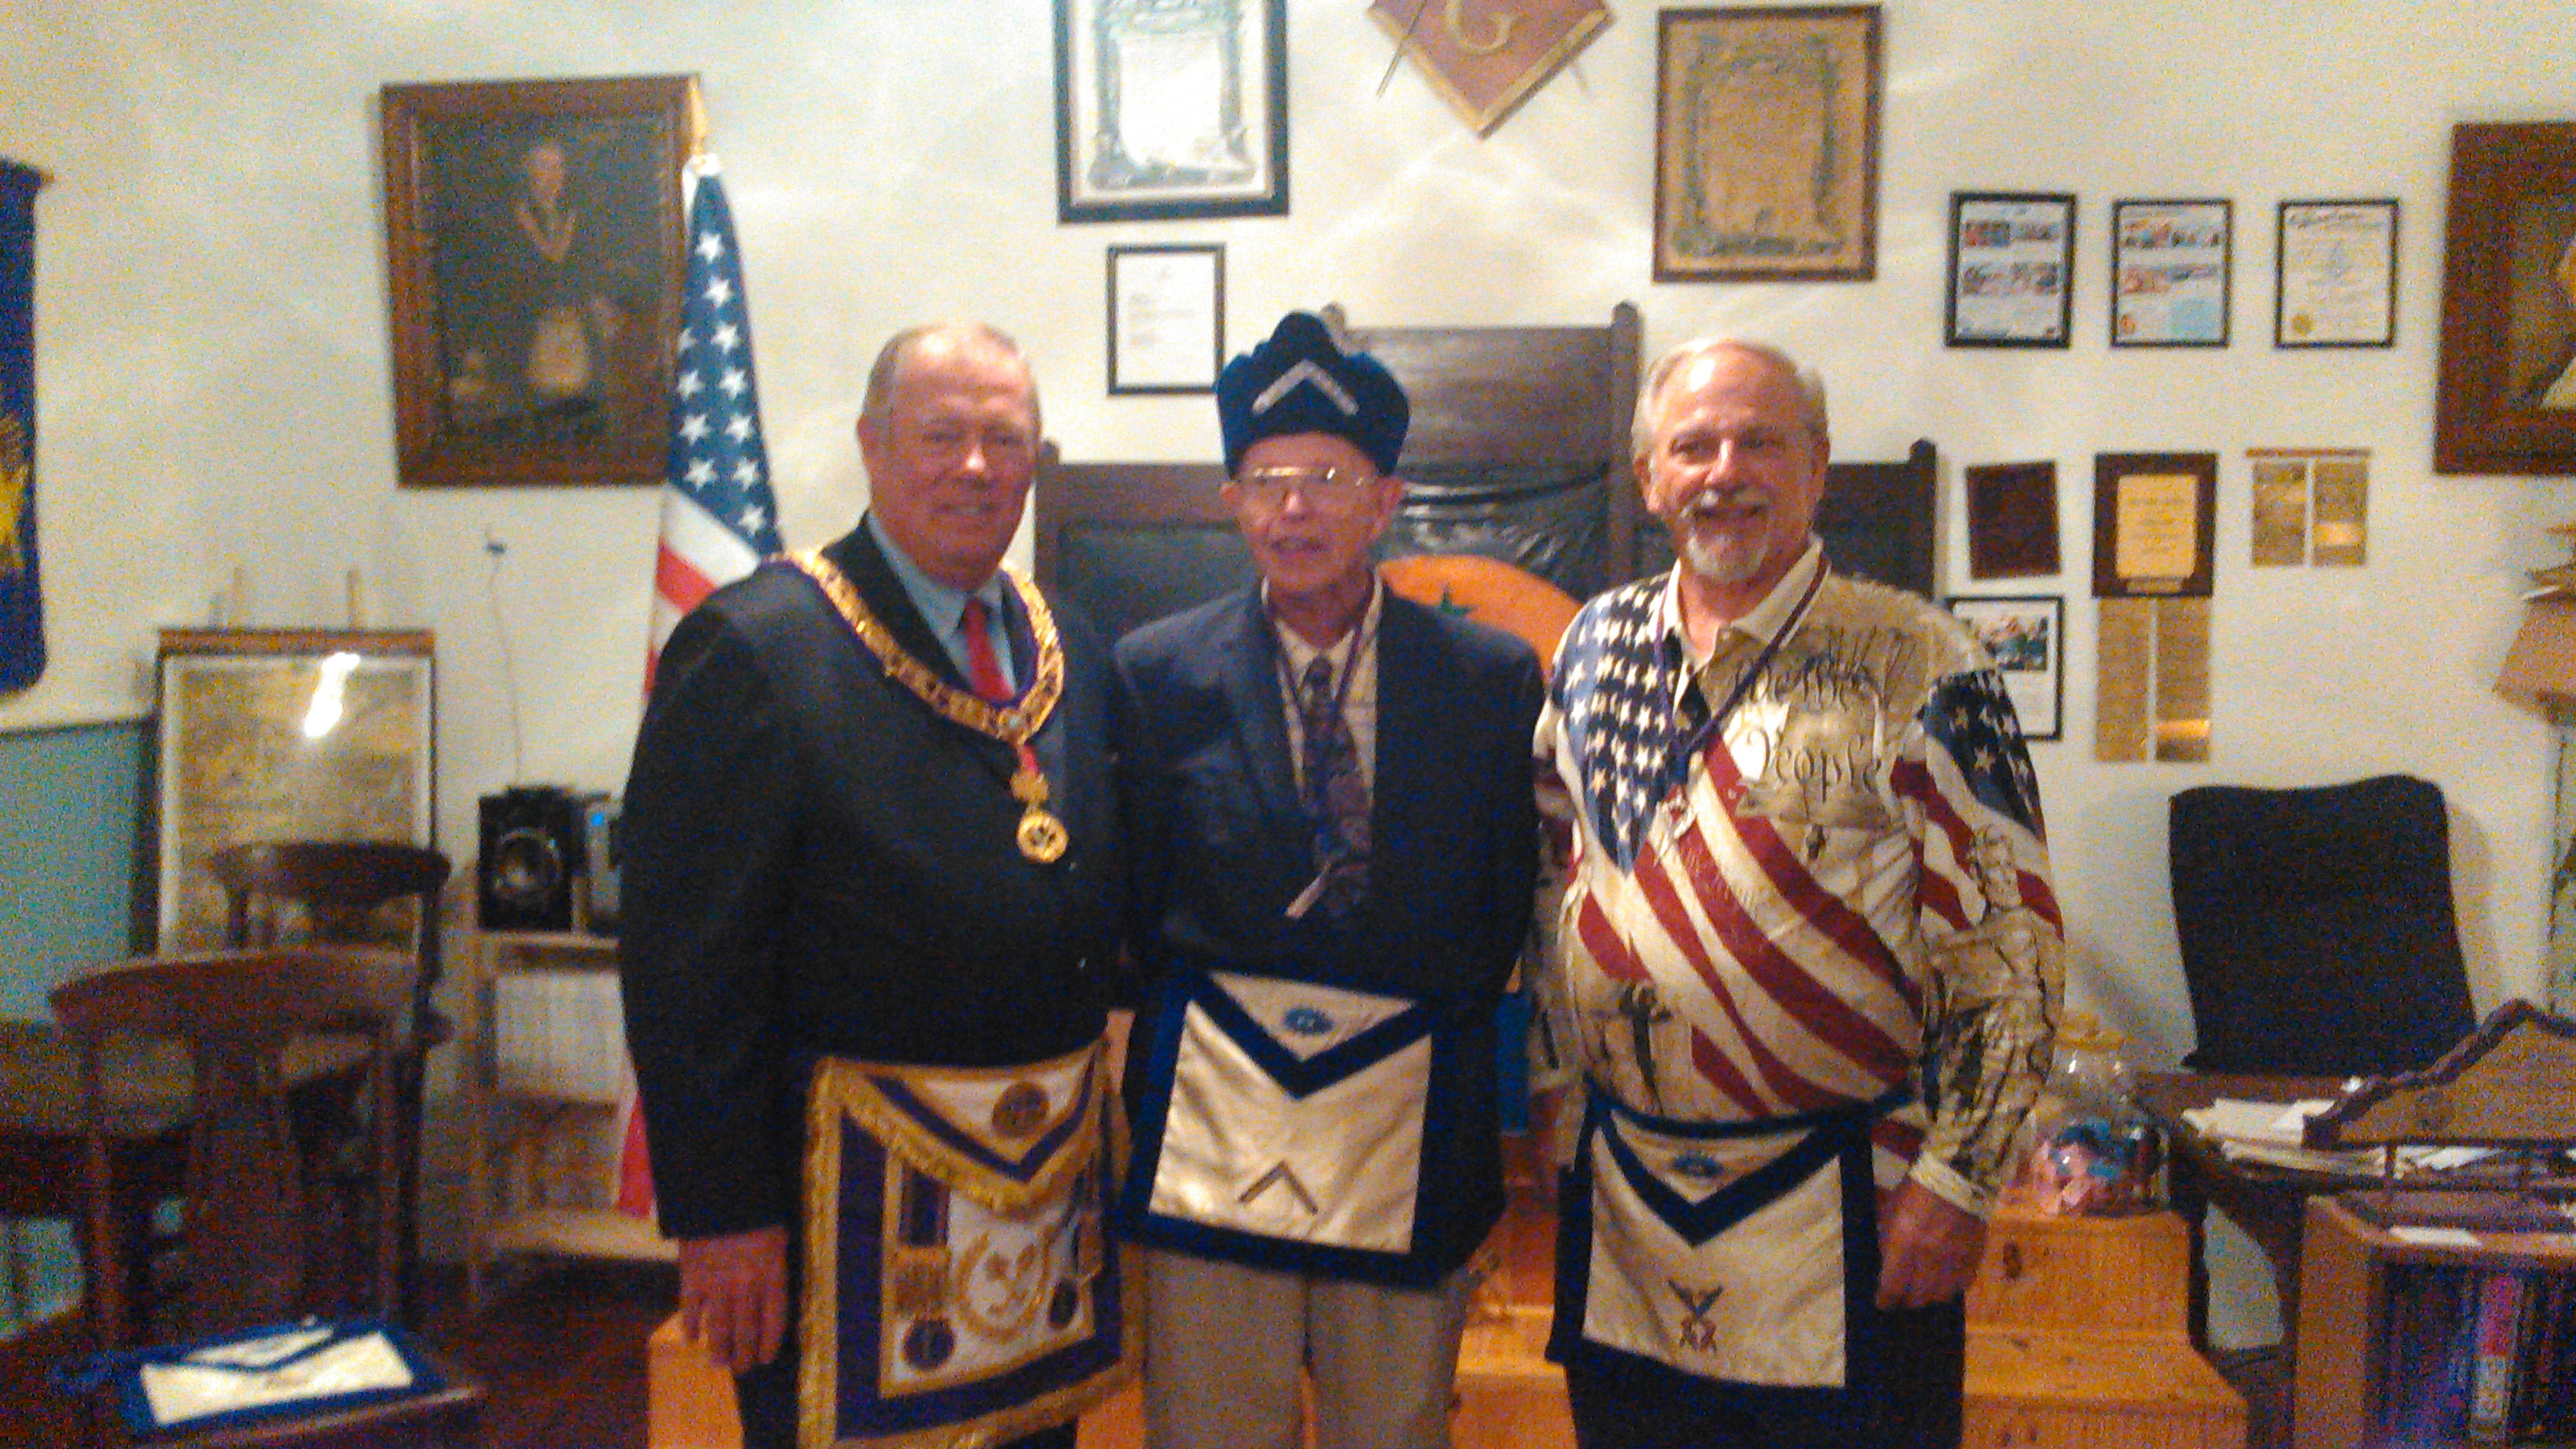 kansas masonic lodges